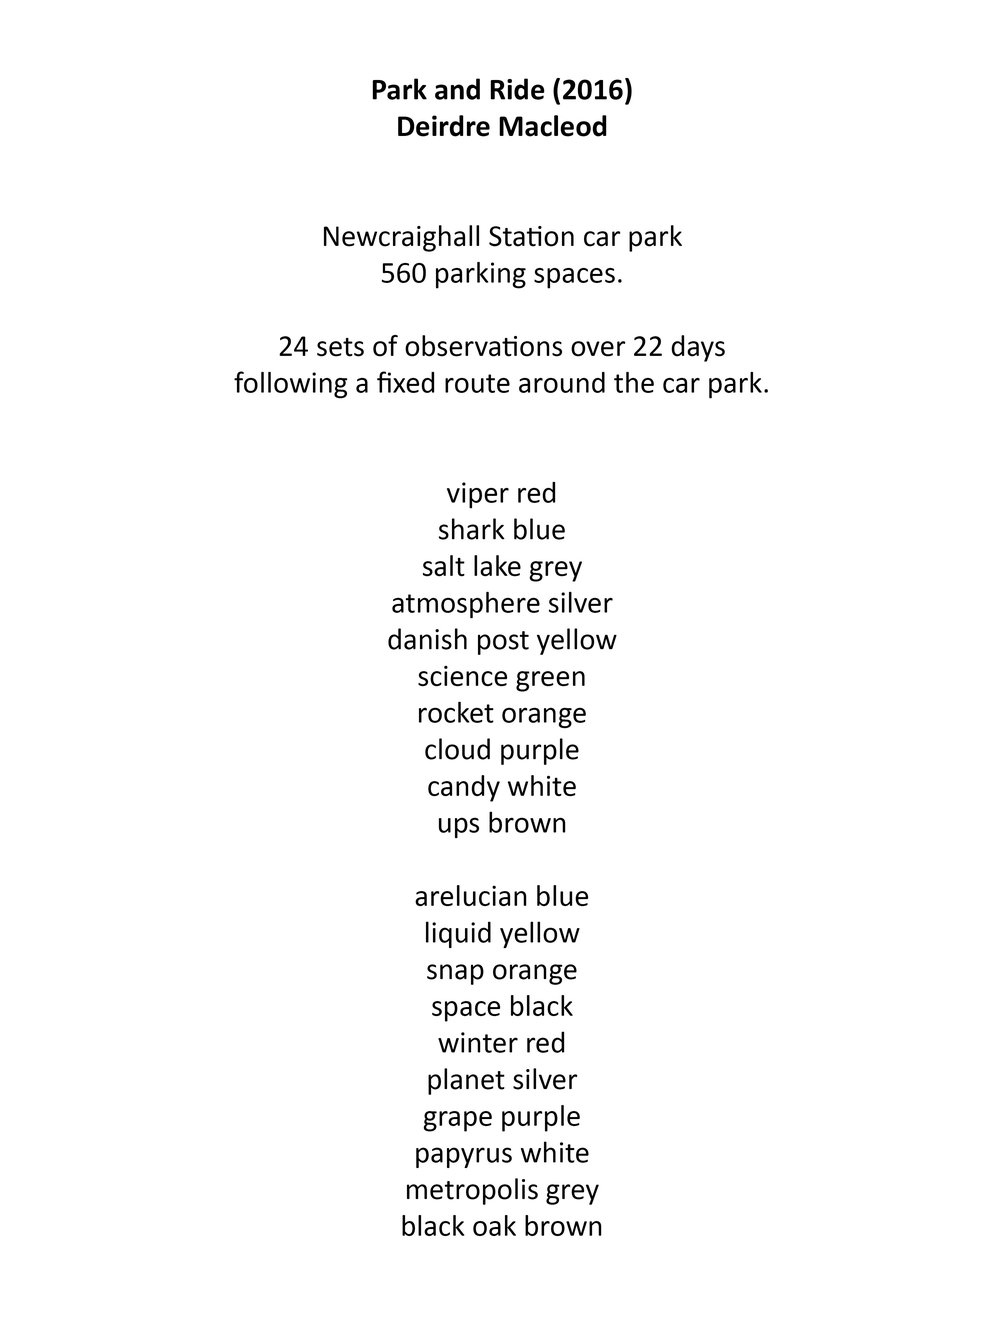 park and ride concrete poem.jpg